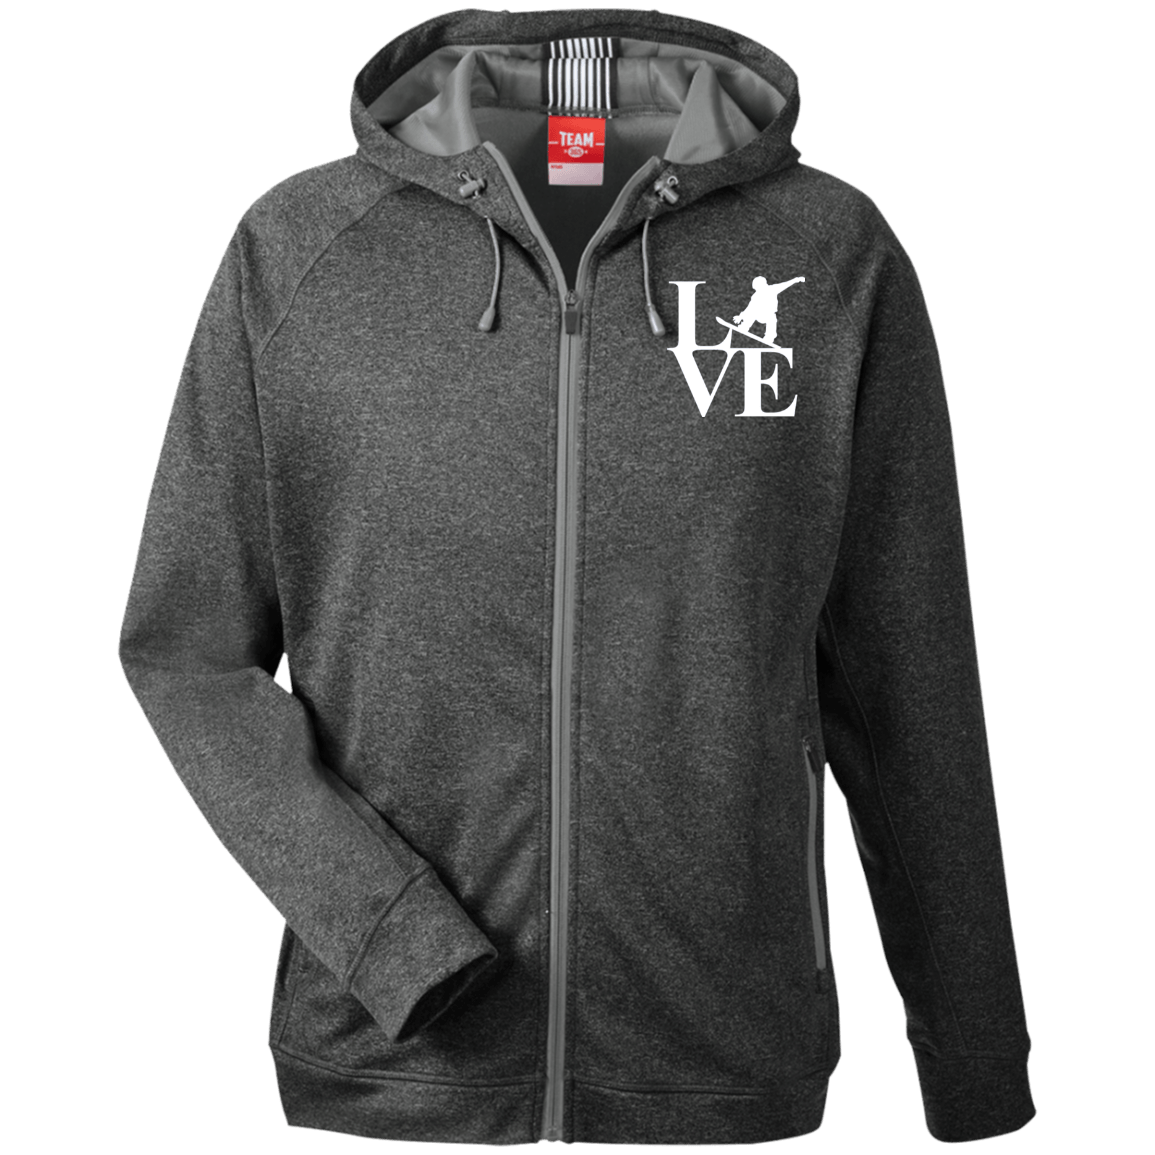 Love Snowboard Men's Zip Jacket - Powderaddicts